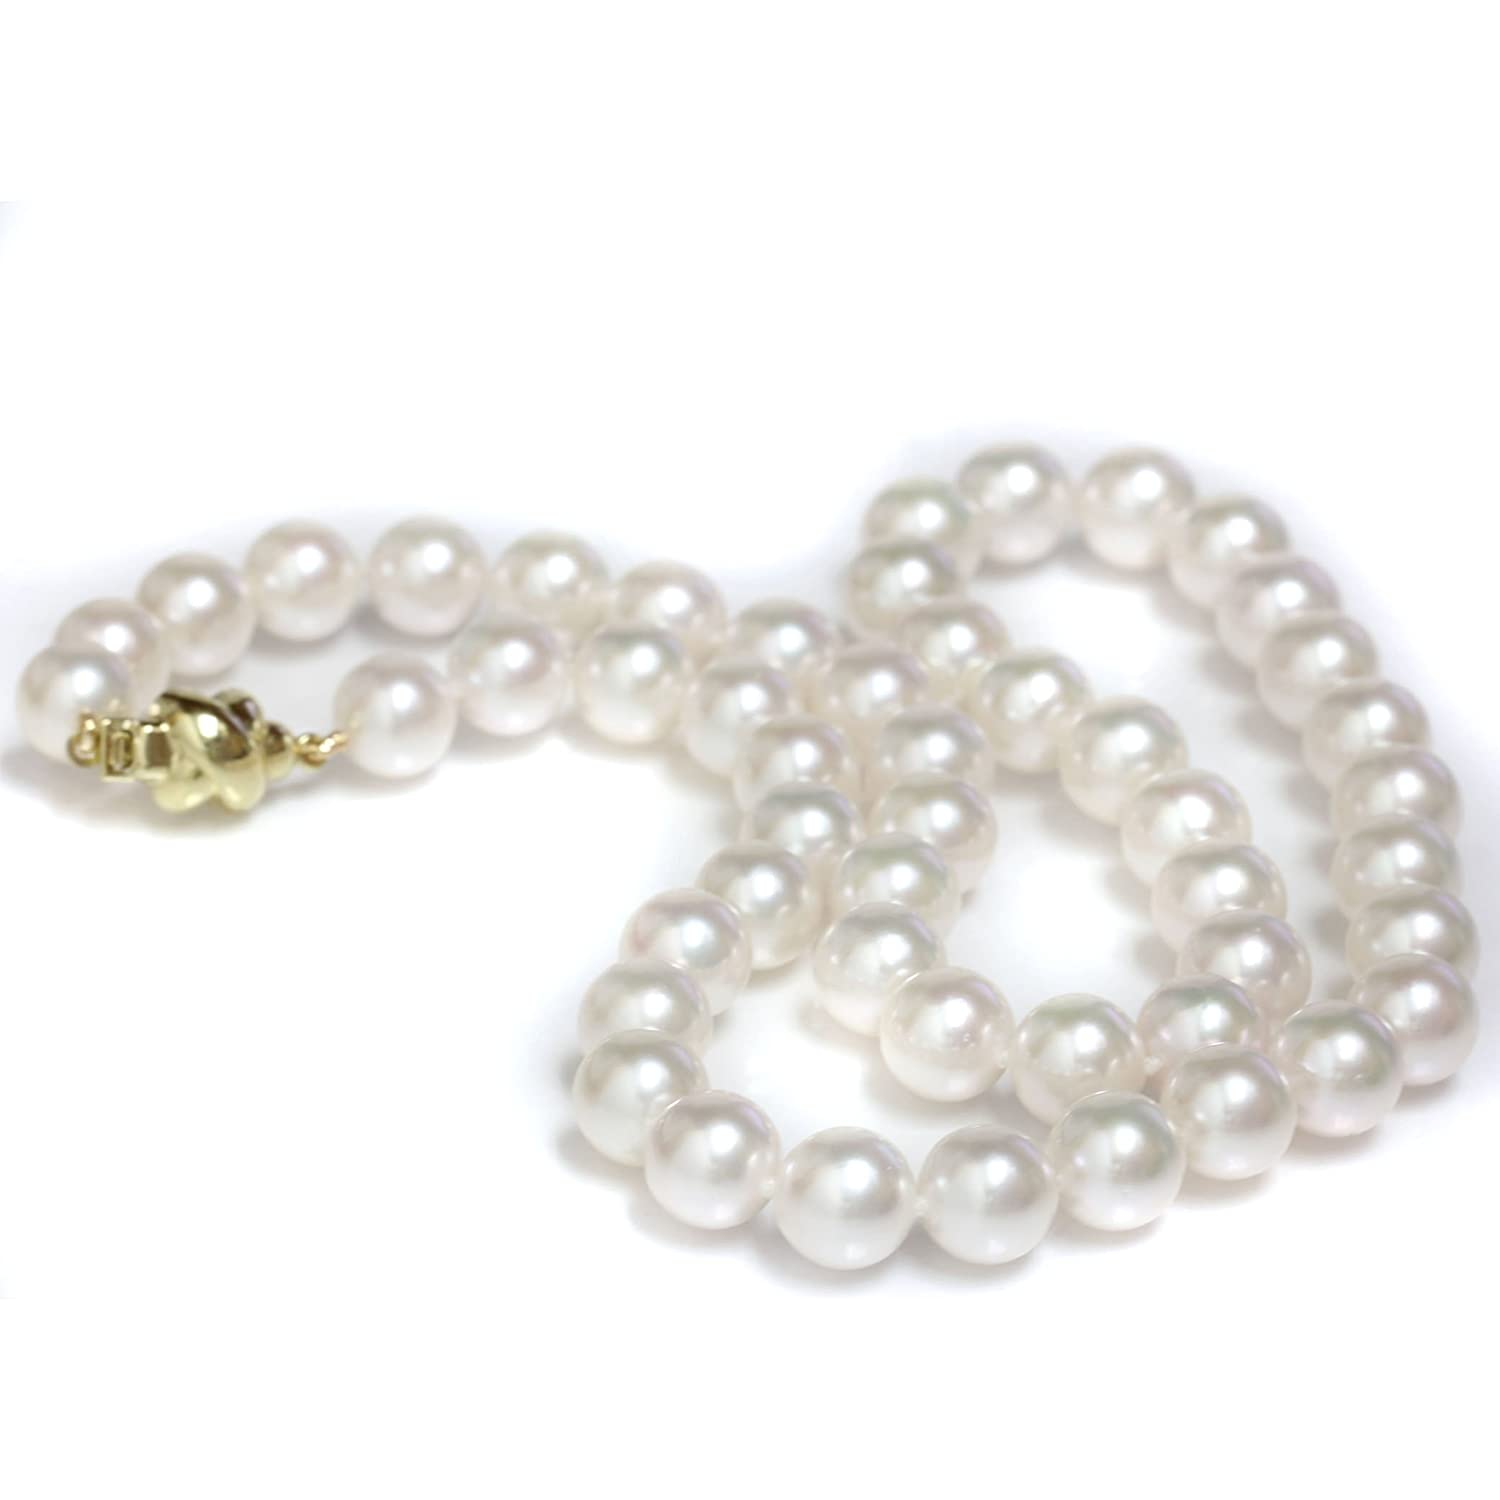 5bc091ec06302 Amazon.com: Seven Seas Pearls 14k Gold 8-8.5 mm Cultured Akoya Pearl ...